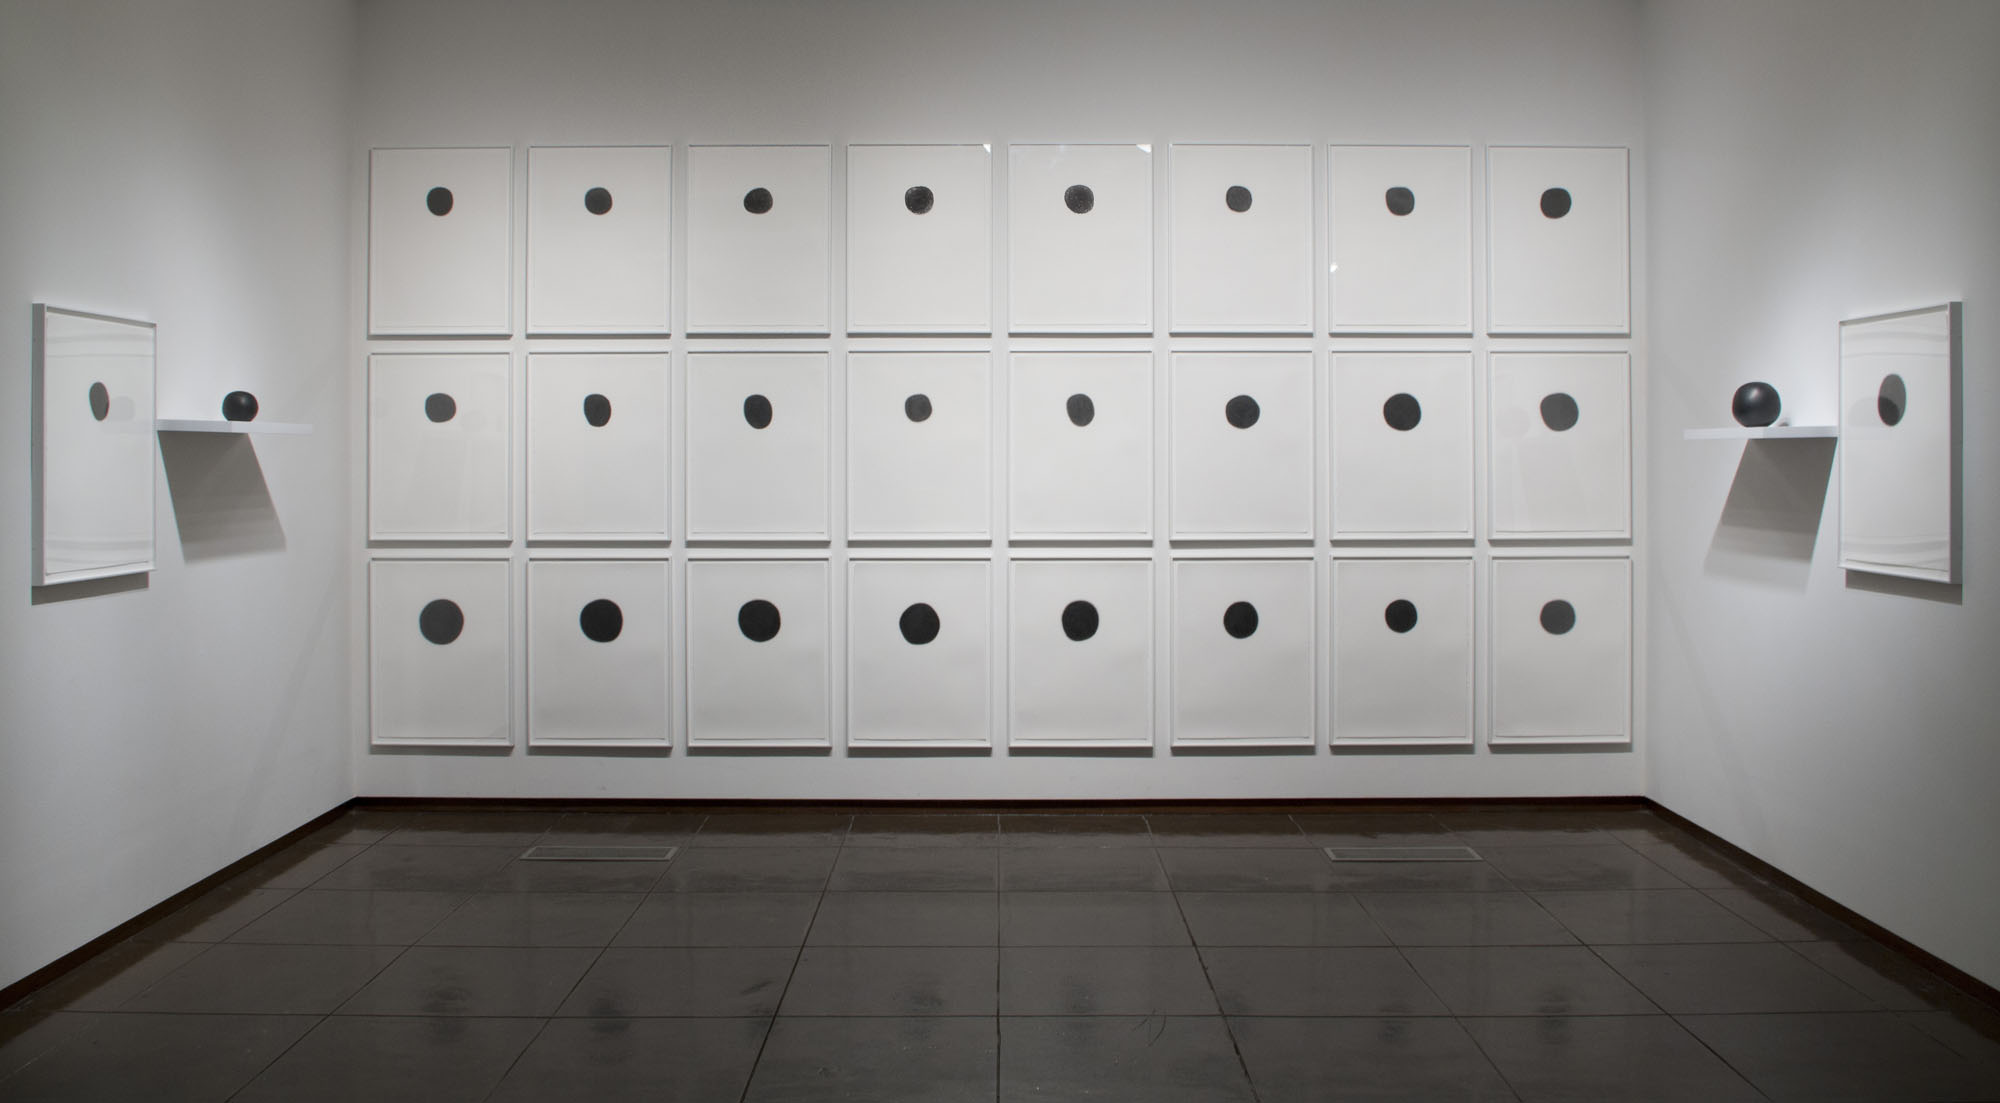 Alcoves 12.5 (installation view, New Mexico Museum of Art, 2015)   Daily Practice: Circle Drawings, Day 1-26, 2010, Graphite pencil on paper   Ucross Sphere no.1 and no. 26, 2010, Solid Graphite